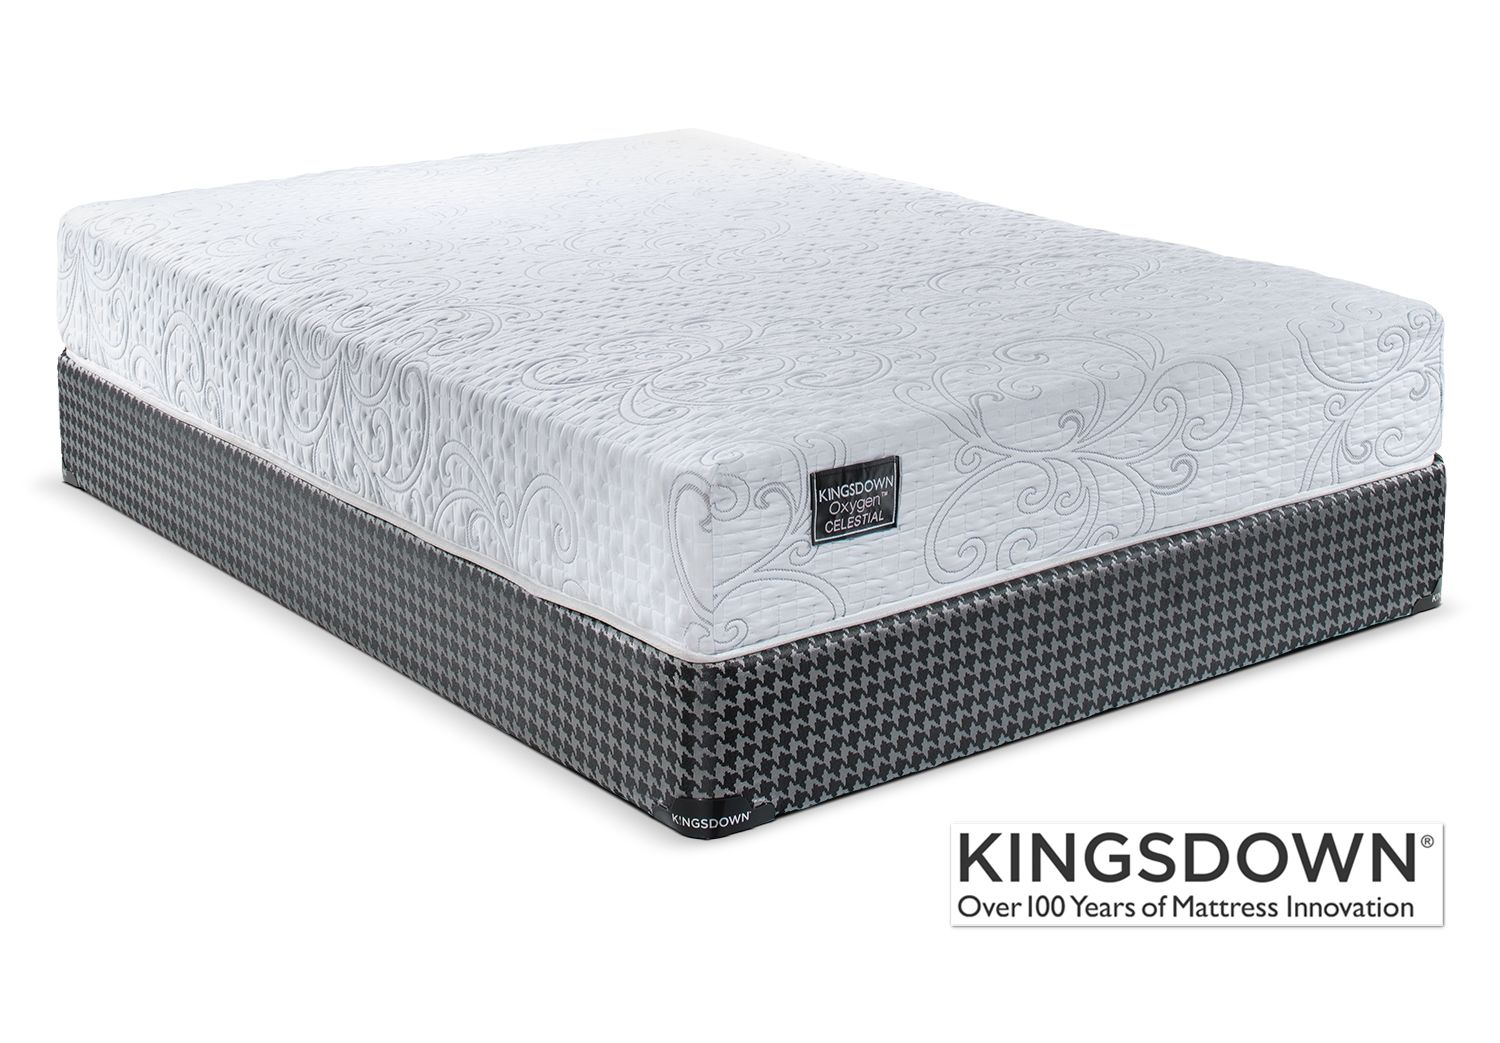 kingsdown celestial firm queen mattress and boxspring set mattress